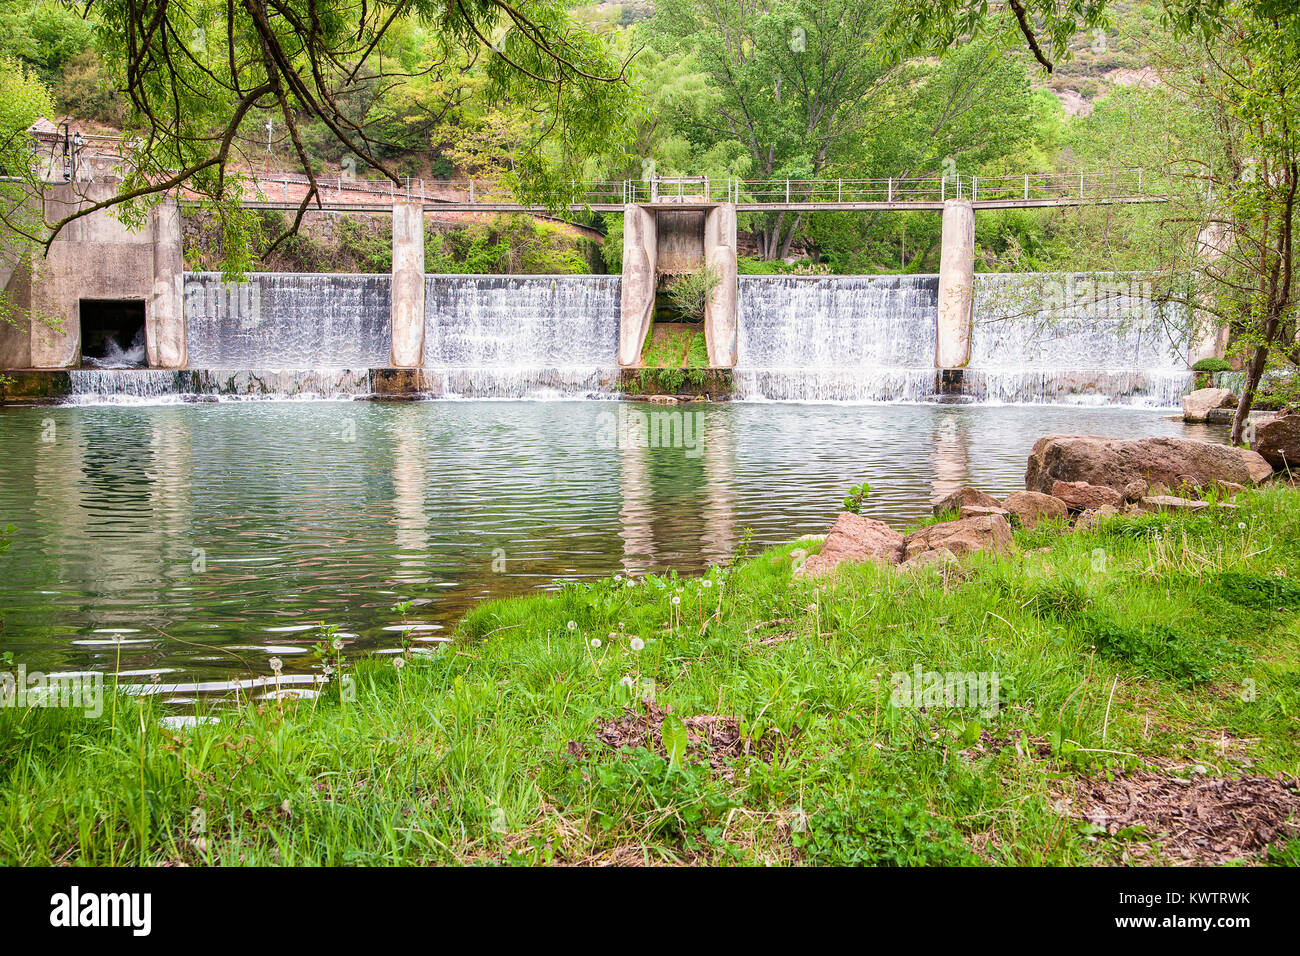 Concrete sluice with its reflection on water surface of Llobregat river in Catalonia, Spain - Stock Image